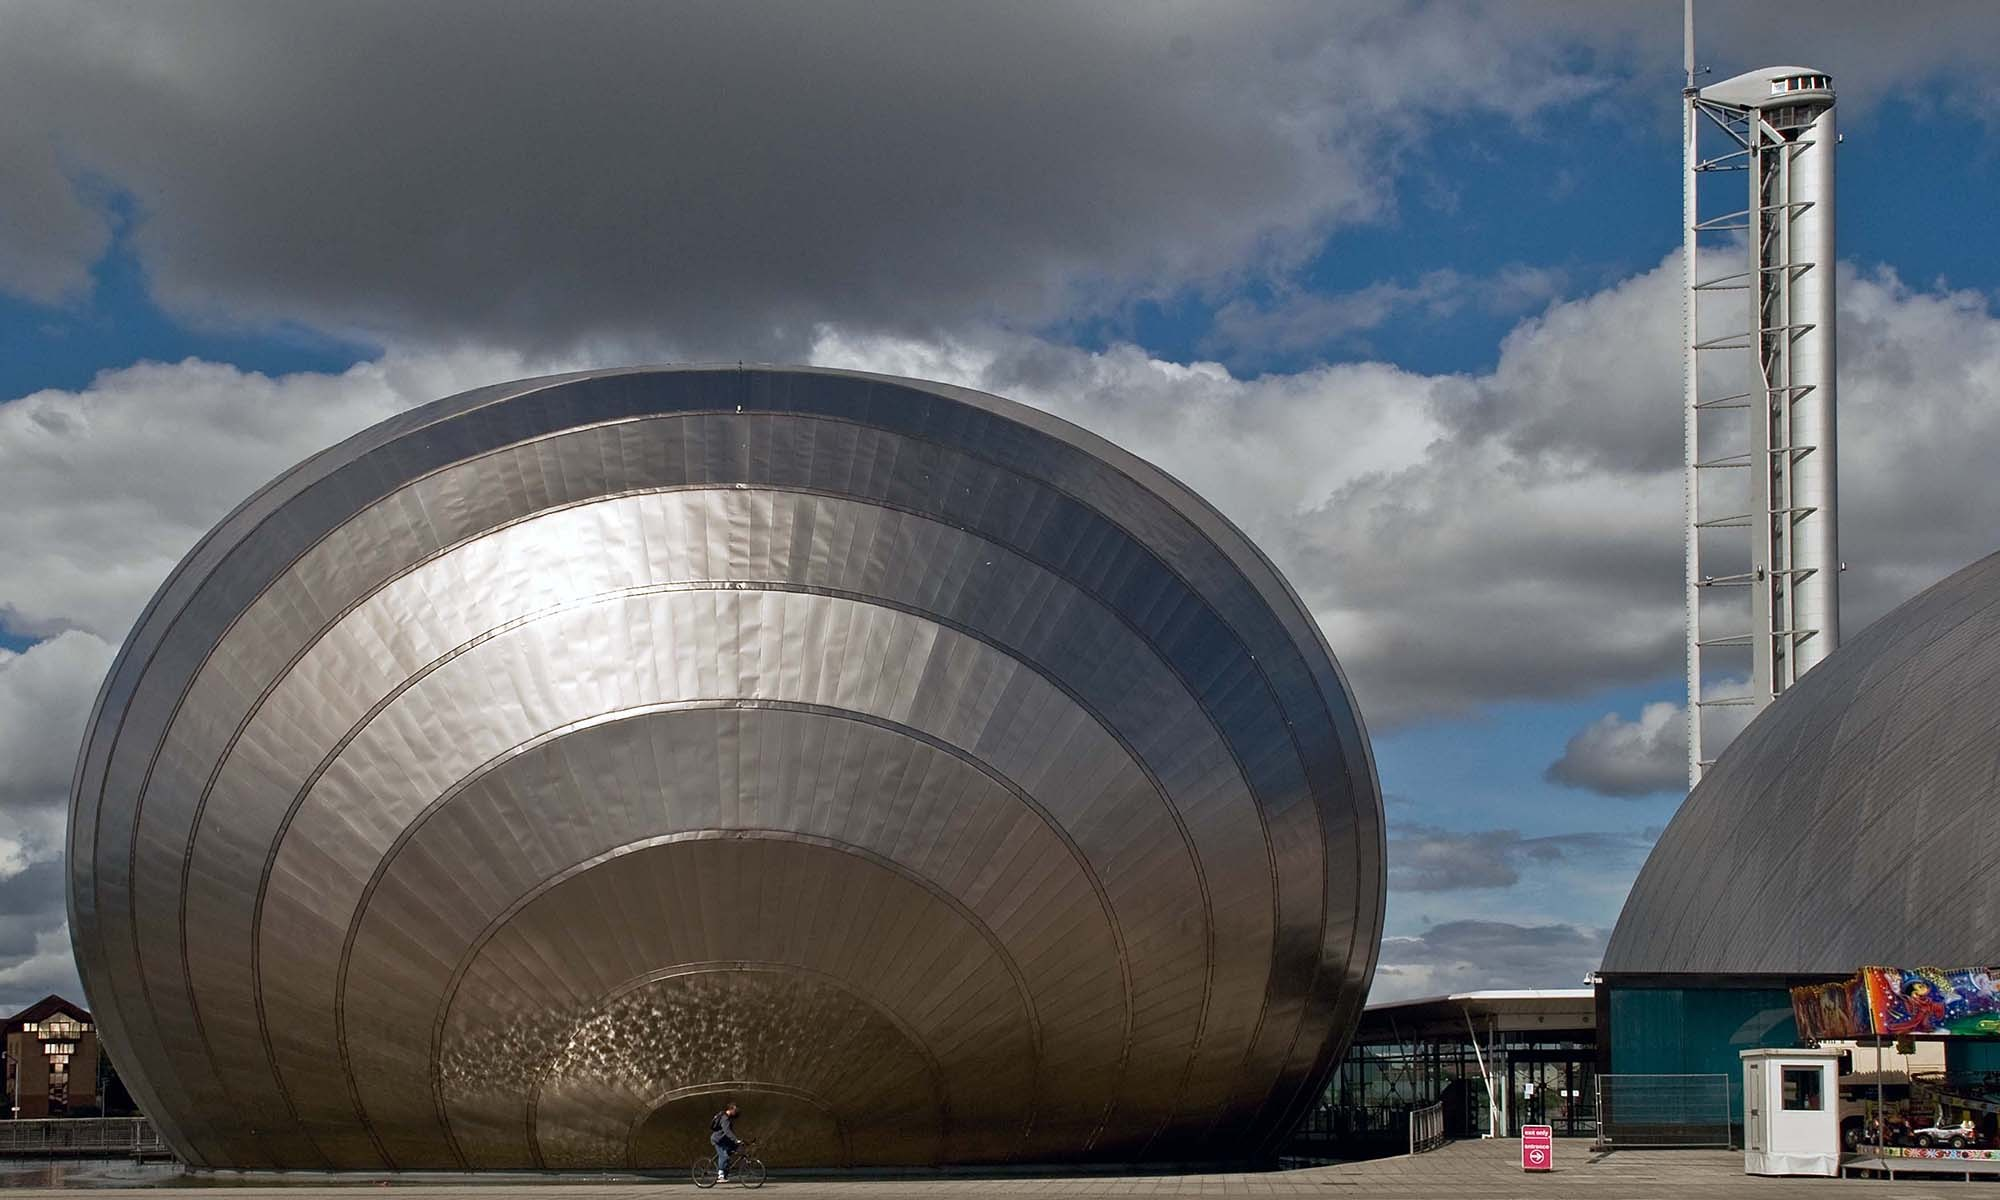 Glasgow IMAX and Tower